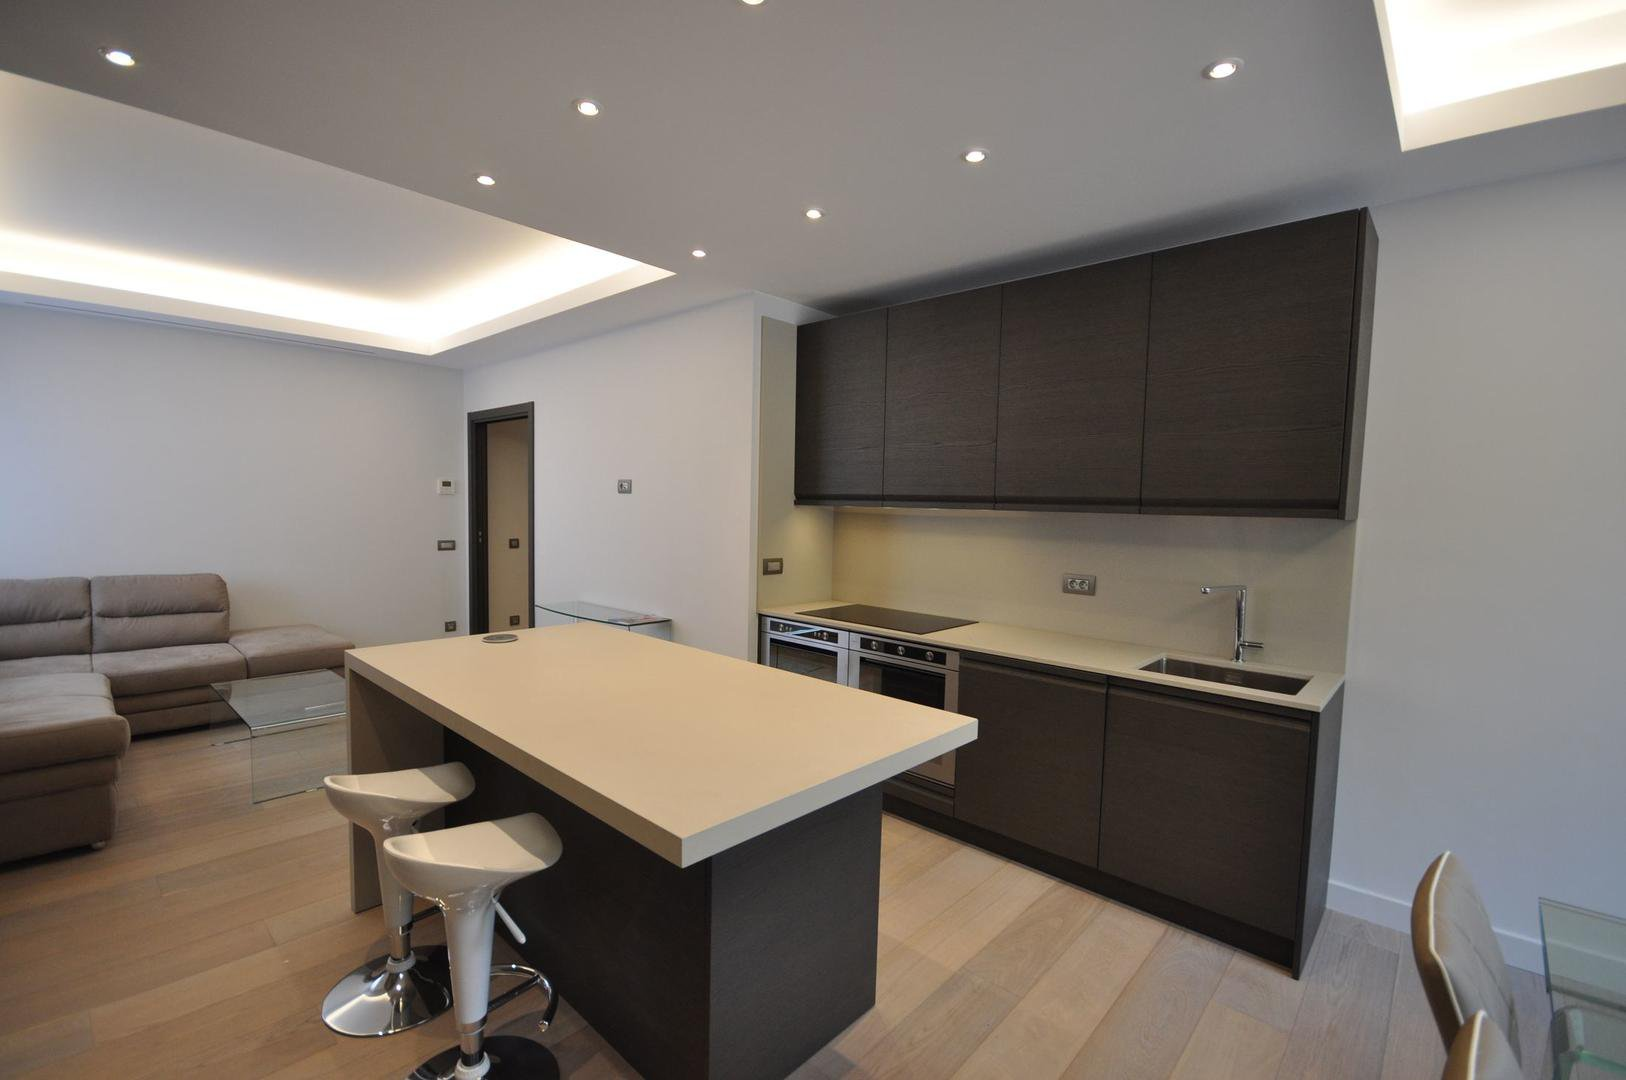 Kitchen bar, kitchen island